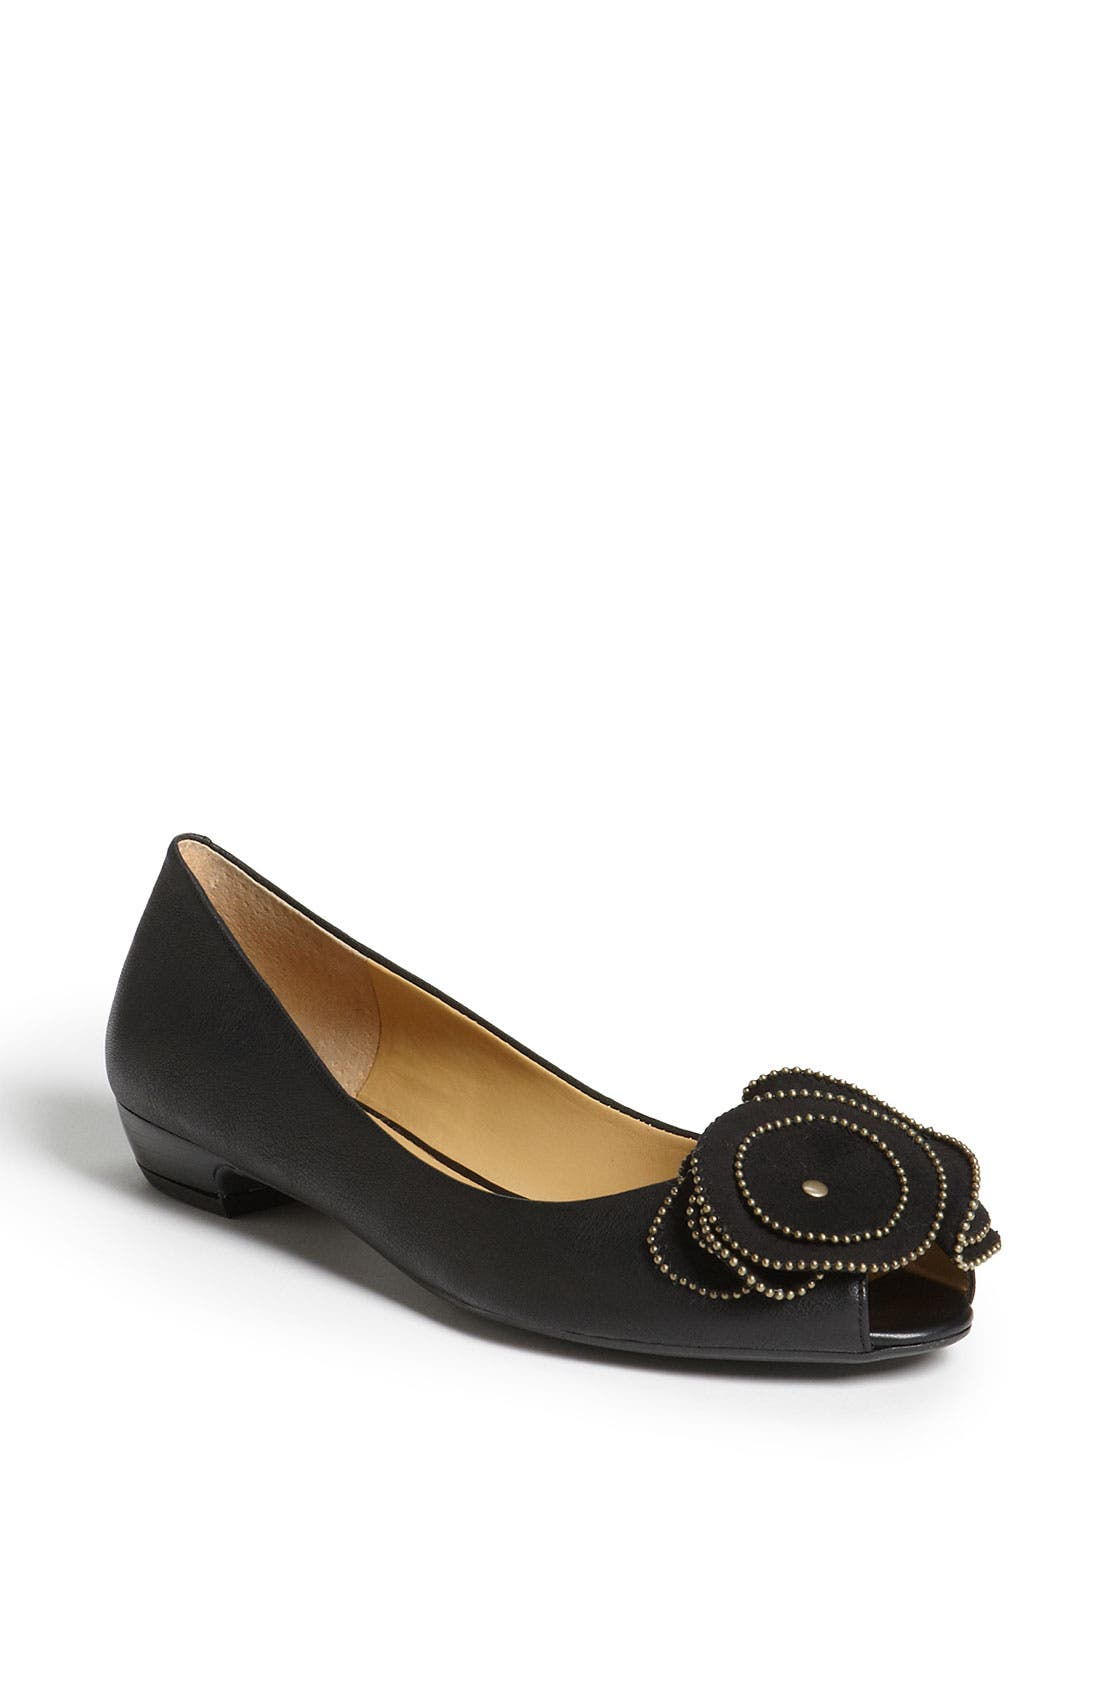 Alternate Image 1 Selected - Nine West 'Jeanious' Flat